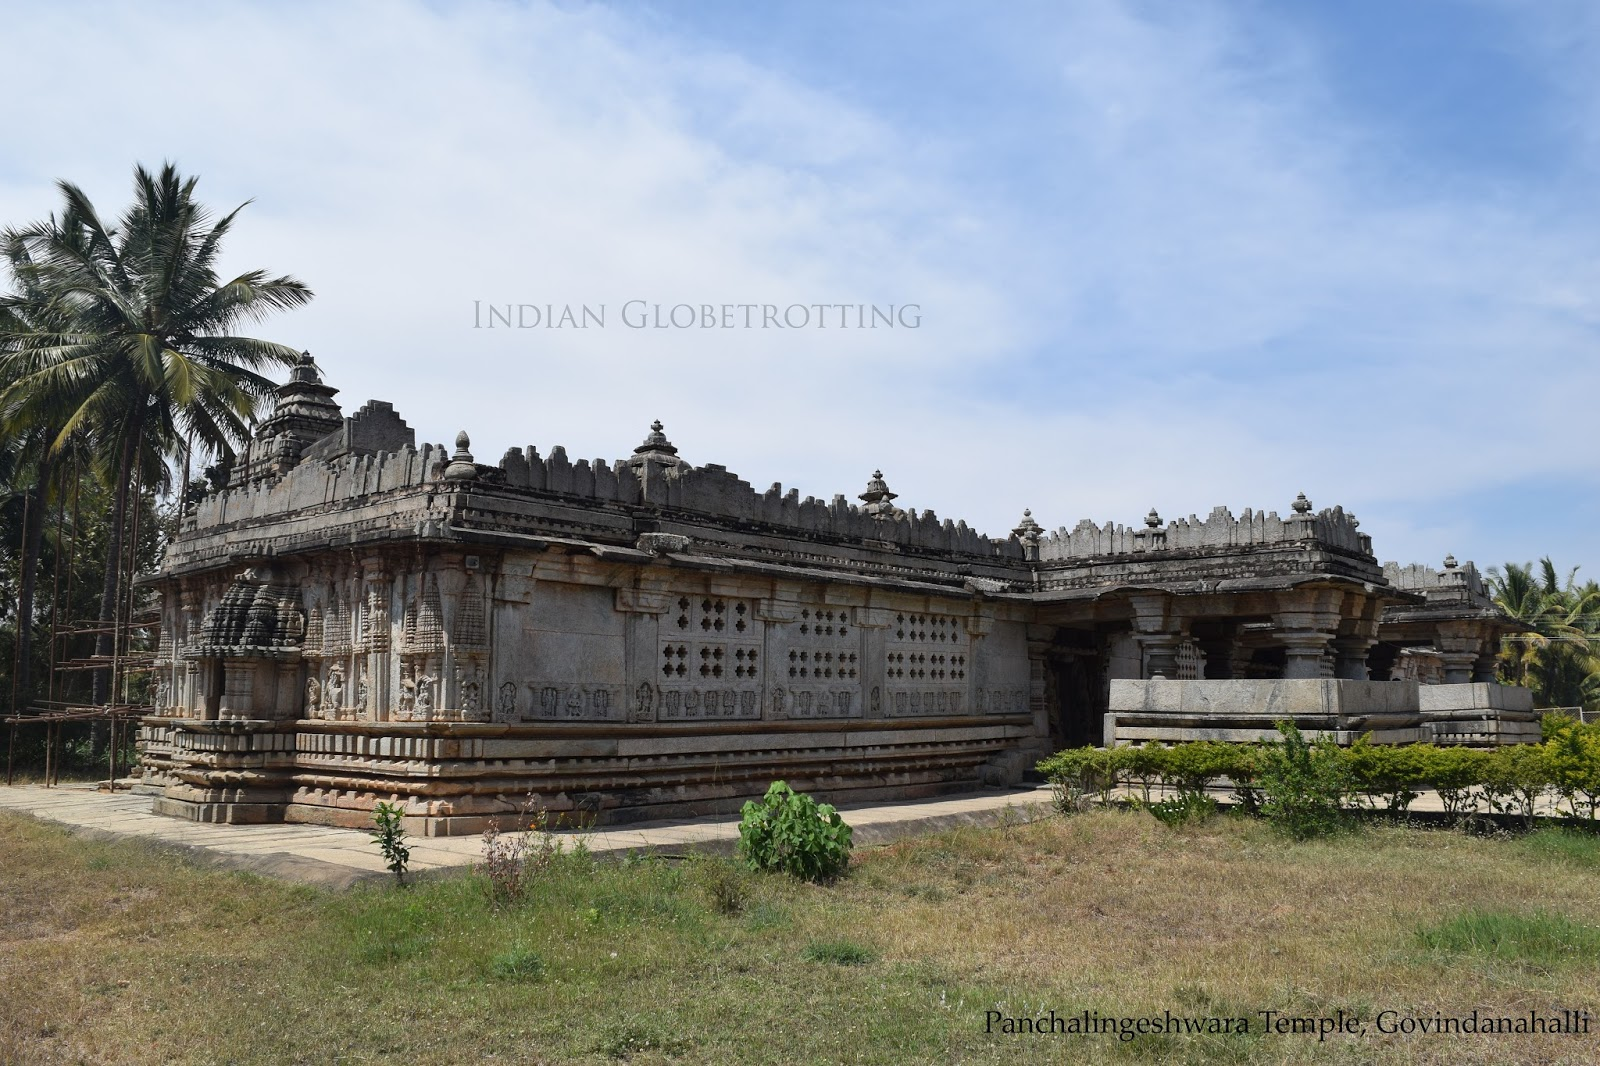 Long view of  Panchalingeshwara Temple in govindanahalli in karnataka